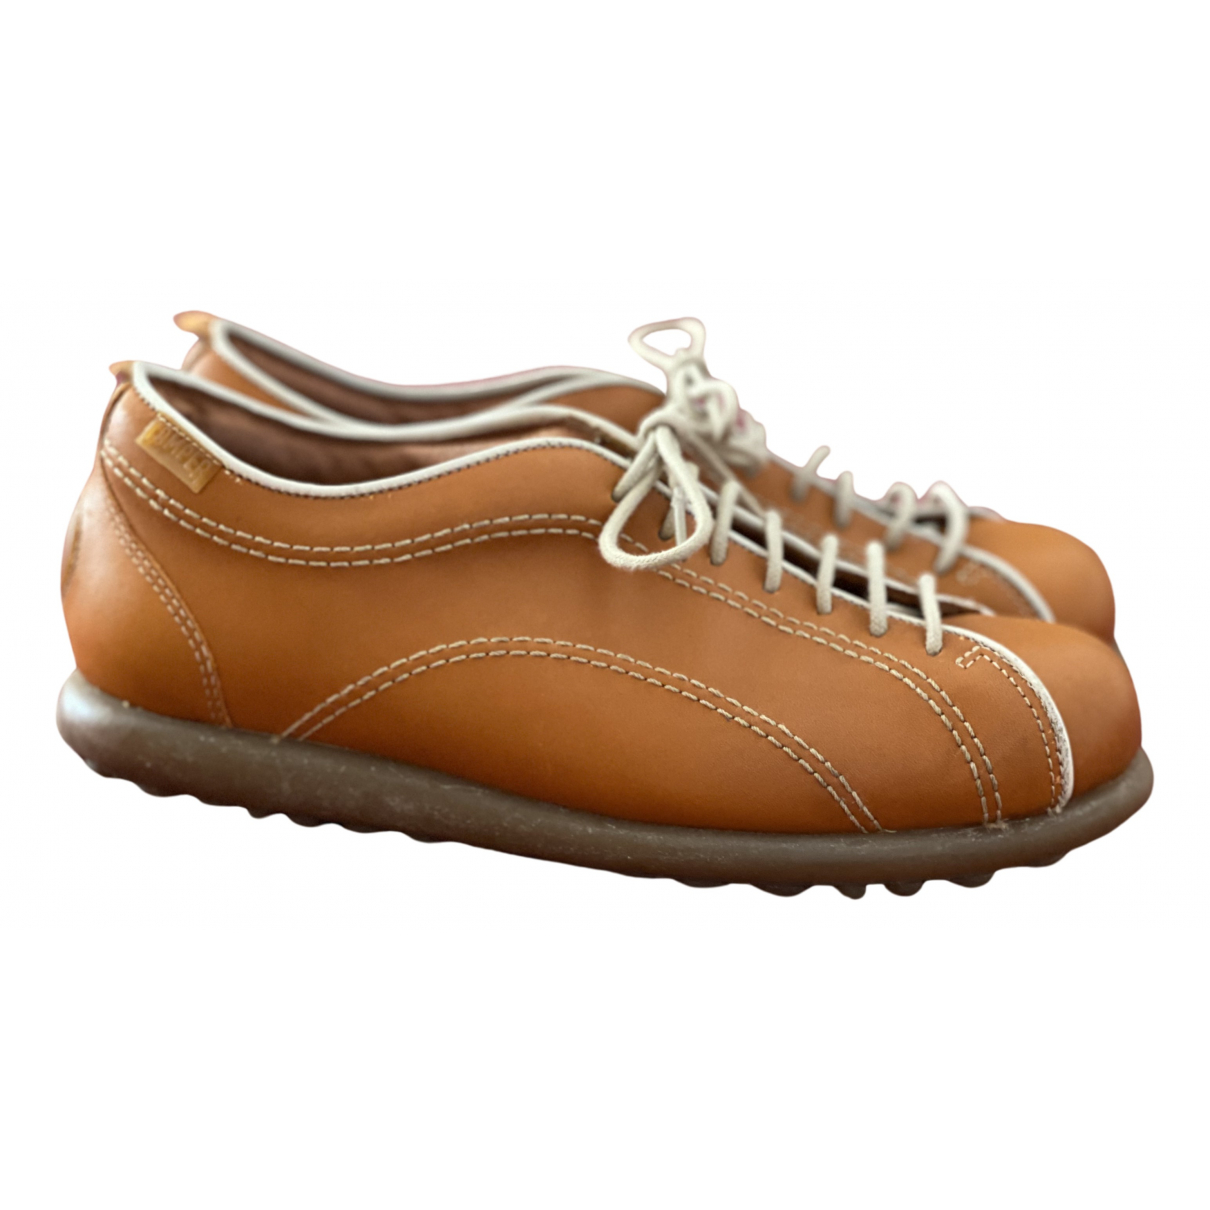 Camper N Orange Leather Trainers for Women 6 UK